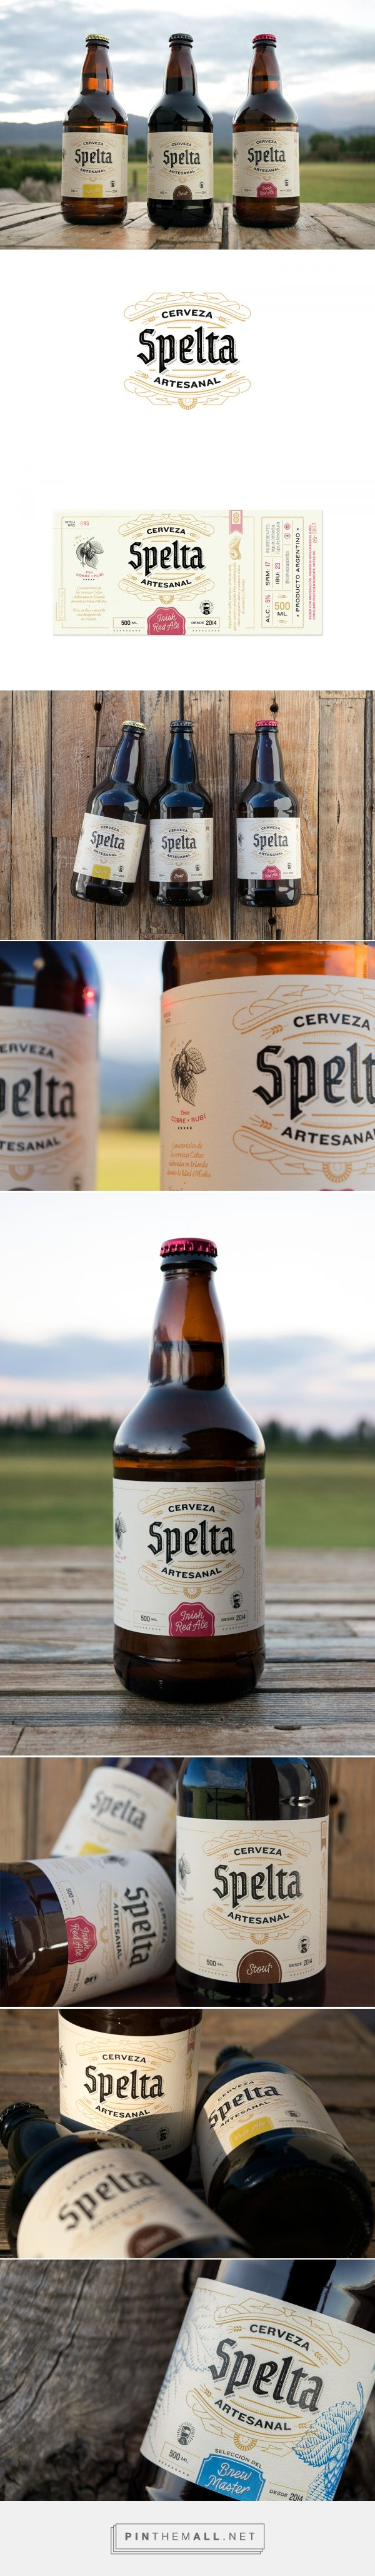 Spelta Craft Beer - Packaging of the World - Creative Package Design Gallery - http://www.packagingoftheworld.com/2017/05/spelta-craft-beer.html